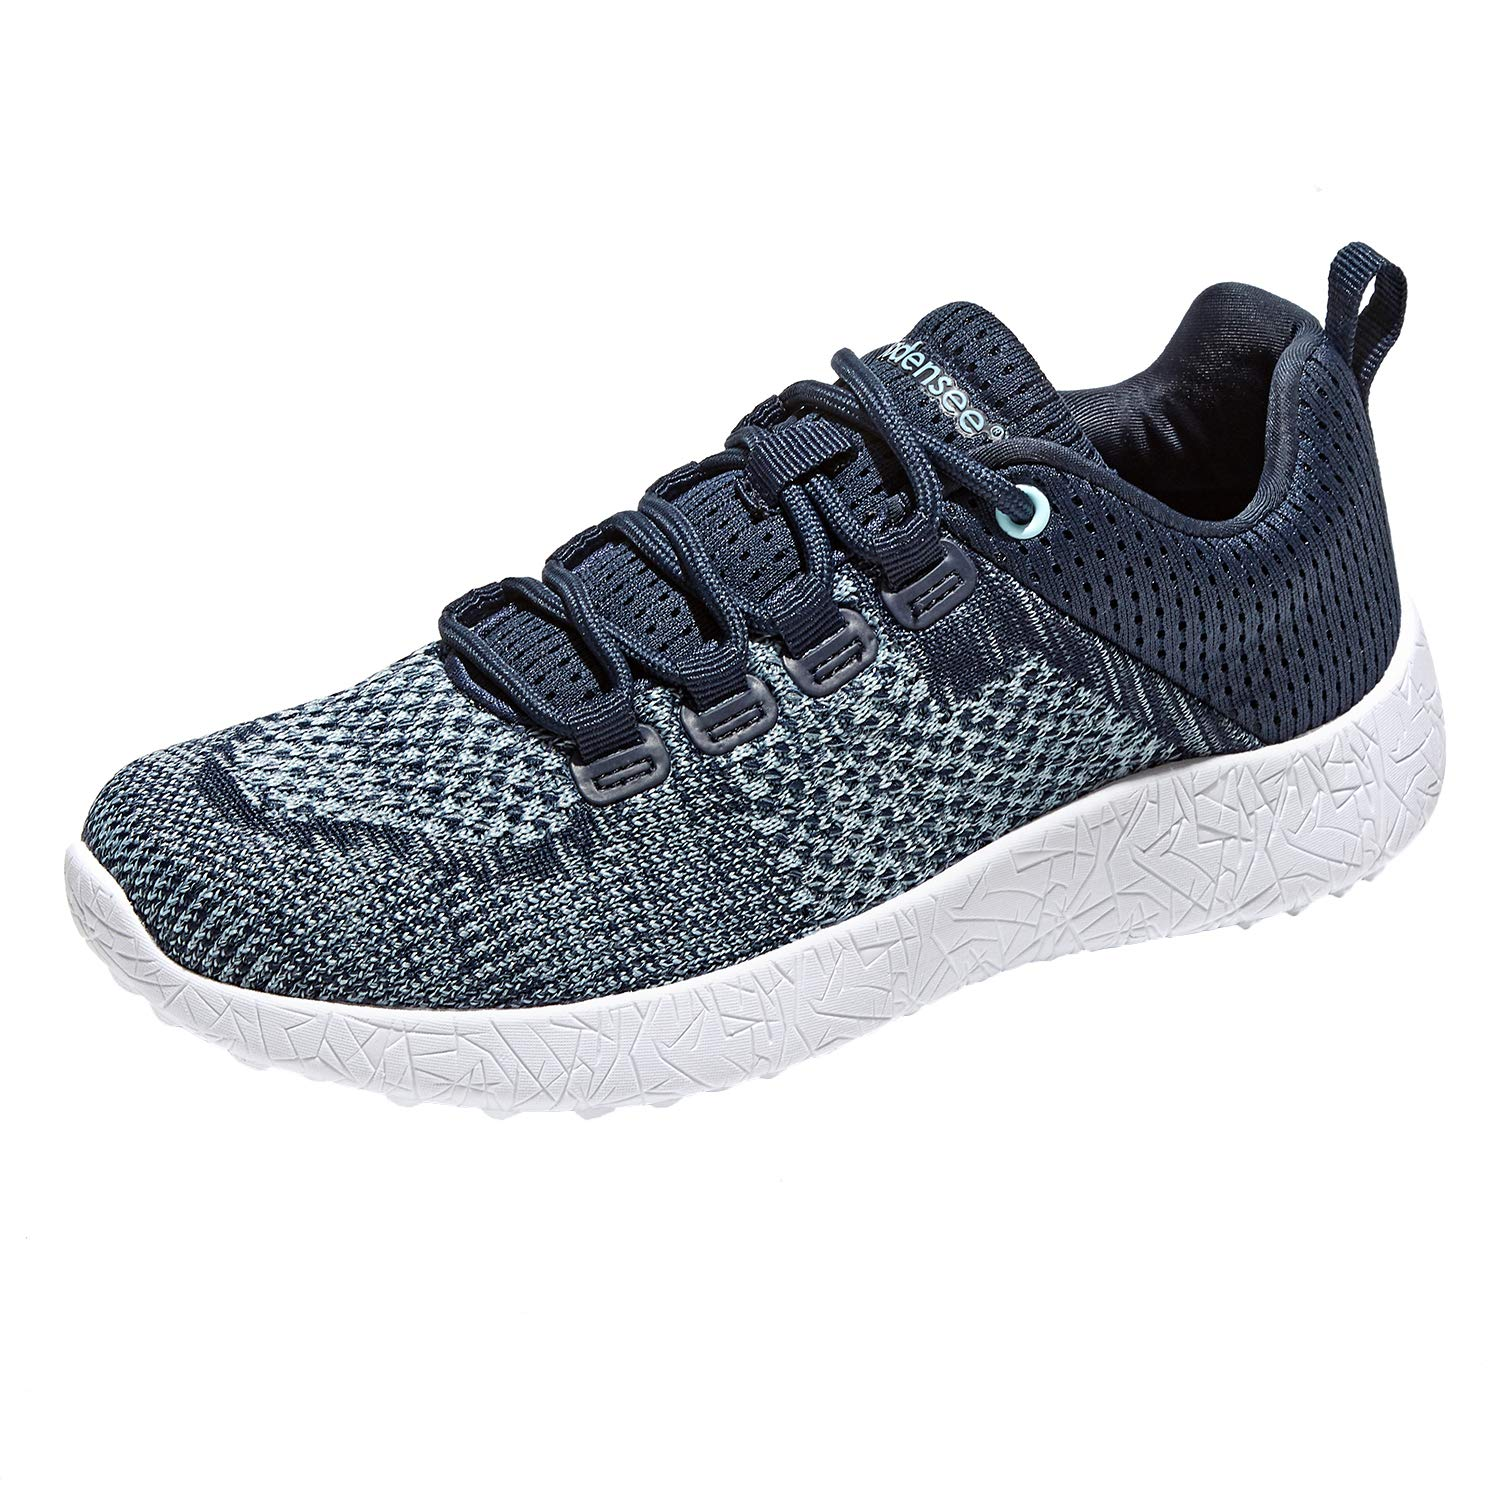 BODENSEE Unisex Adult Sneakers Athletic Sports Lace Up Lightweight Breathable Walking Trail Running Shoes